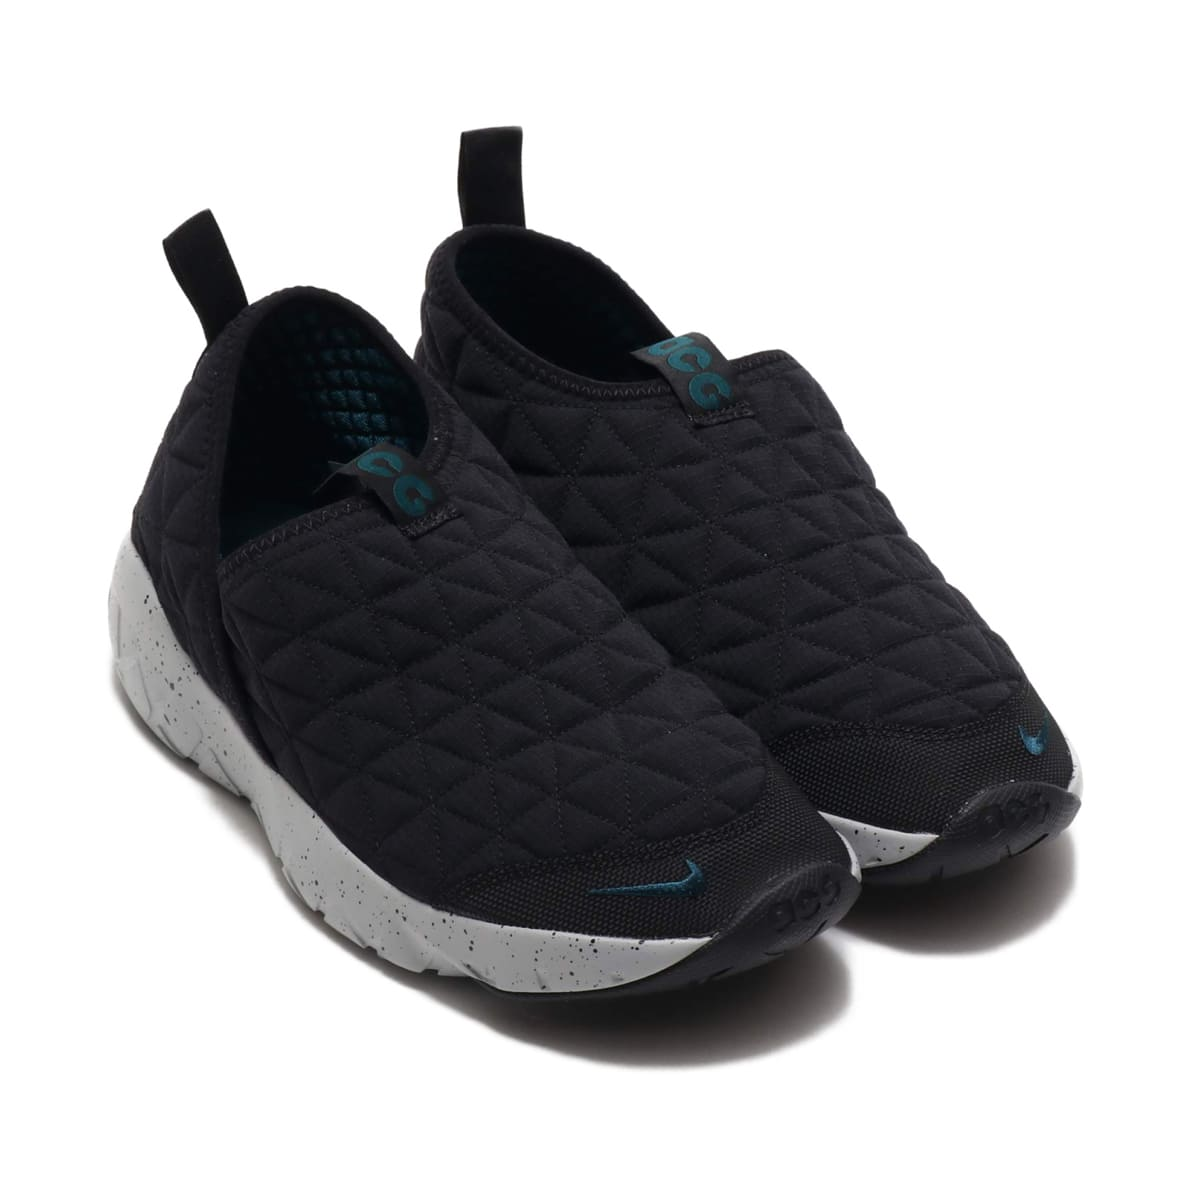 NIKE ACG MOC 3.0 BLACK/MIDNIGHT TURQ-WOLF GREY 20SP-S_photo_large